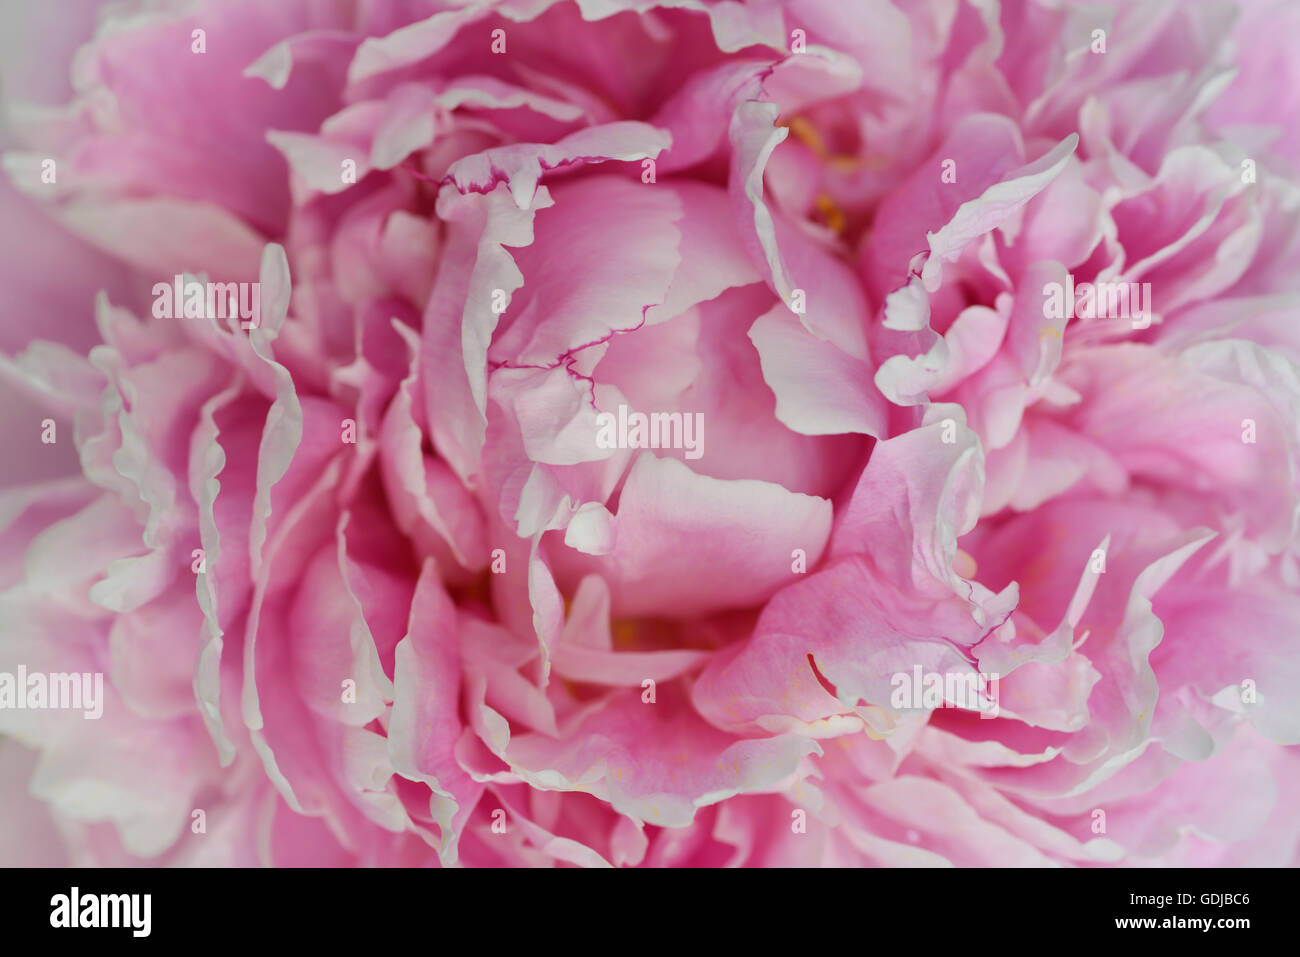 Close up of pink petals of a Peony flower head - Stock Image